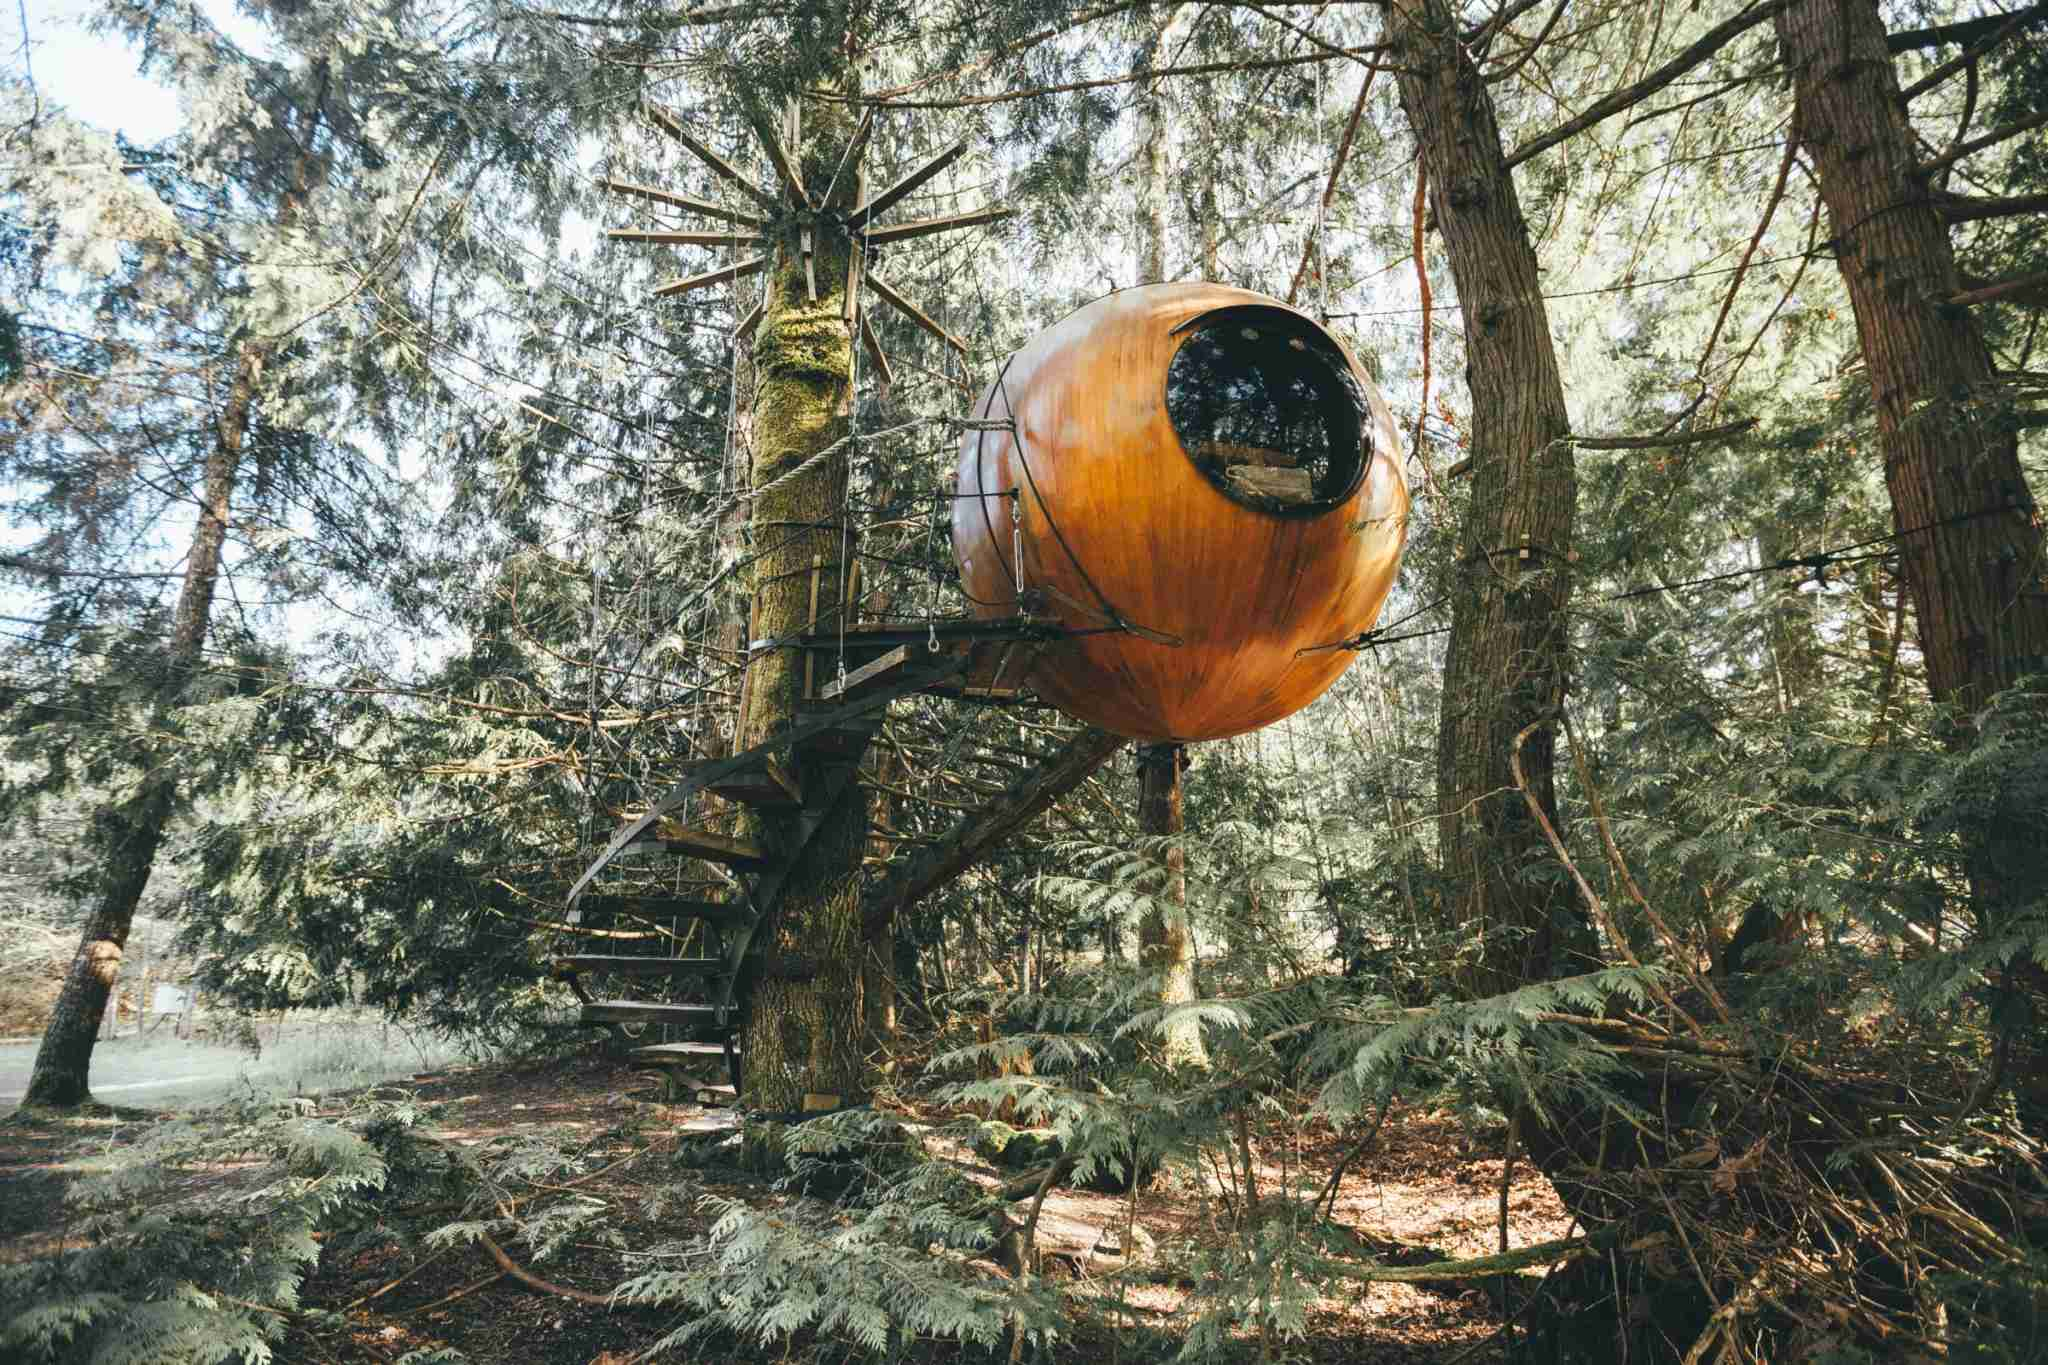 Free Spirit Spheres. Photo Courtesy of K.Kemsley.